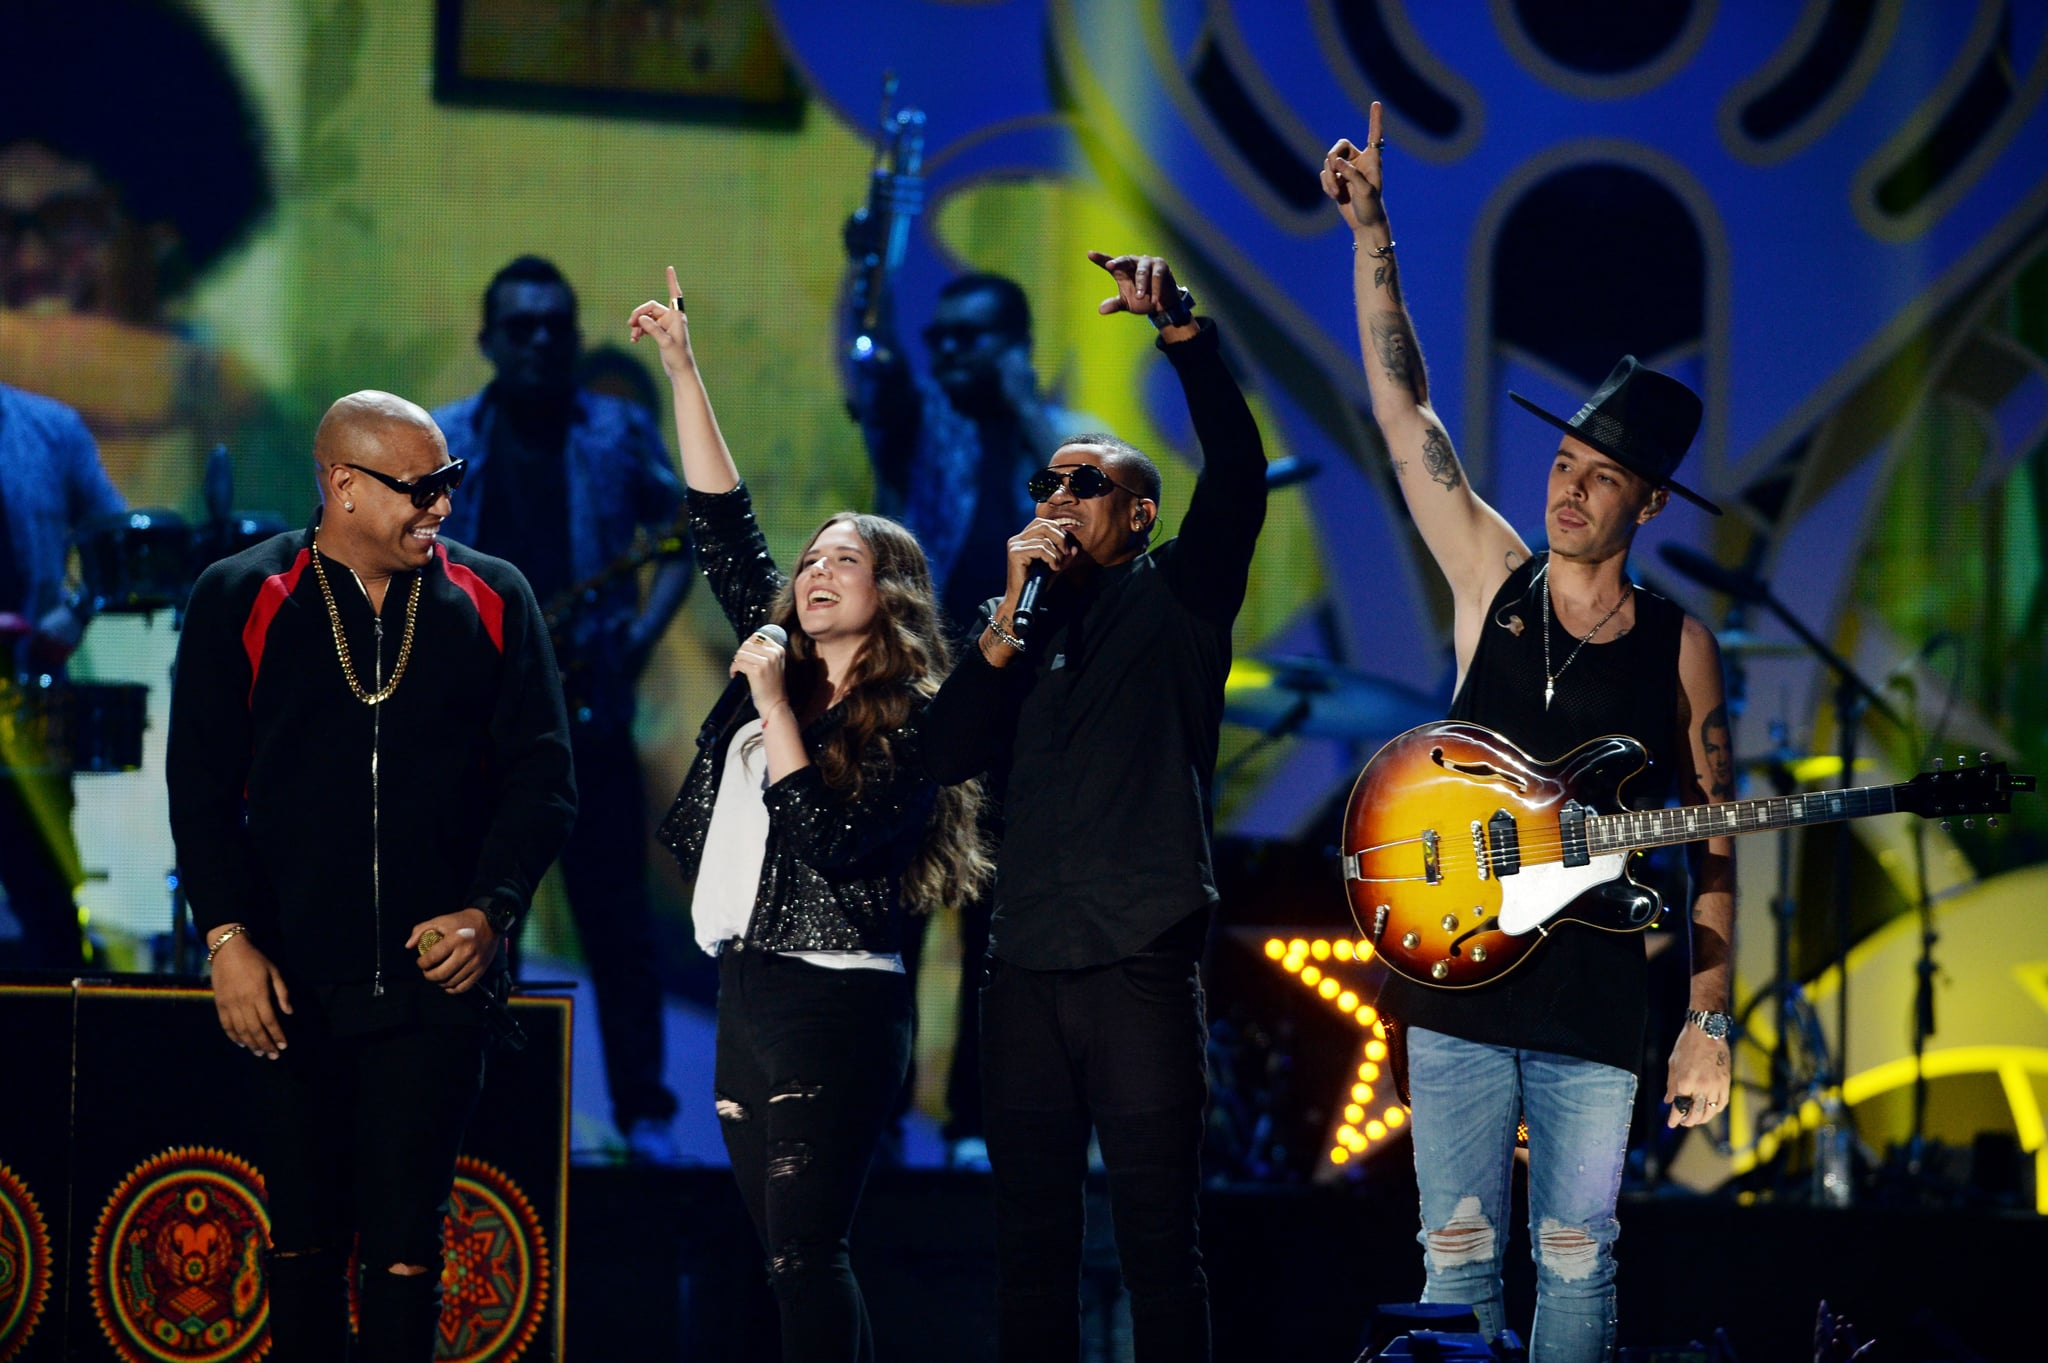 MIAMI, FL - NOVEMBER 04:  Alexander Delgado, Tirzah Joy Huerta, Randy Malcom and Jesse Eduardo Huerta perform onstage during the iHeartRadio Fiesta Latina: Celebrating Our Heroes at American Airlines Arena on November 4, 2017 in Miami, Florida.  (Photo by Jason Koerner/Getty Images for iHeart Radio)